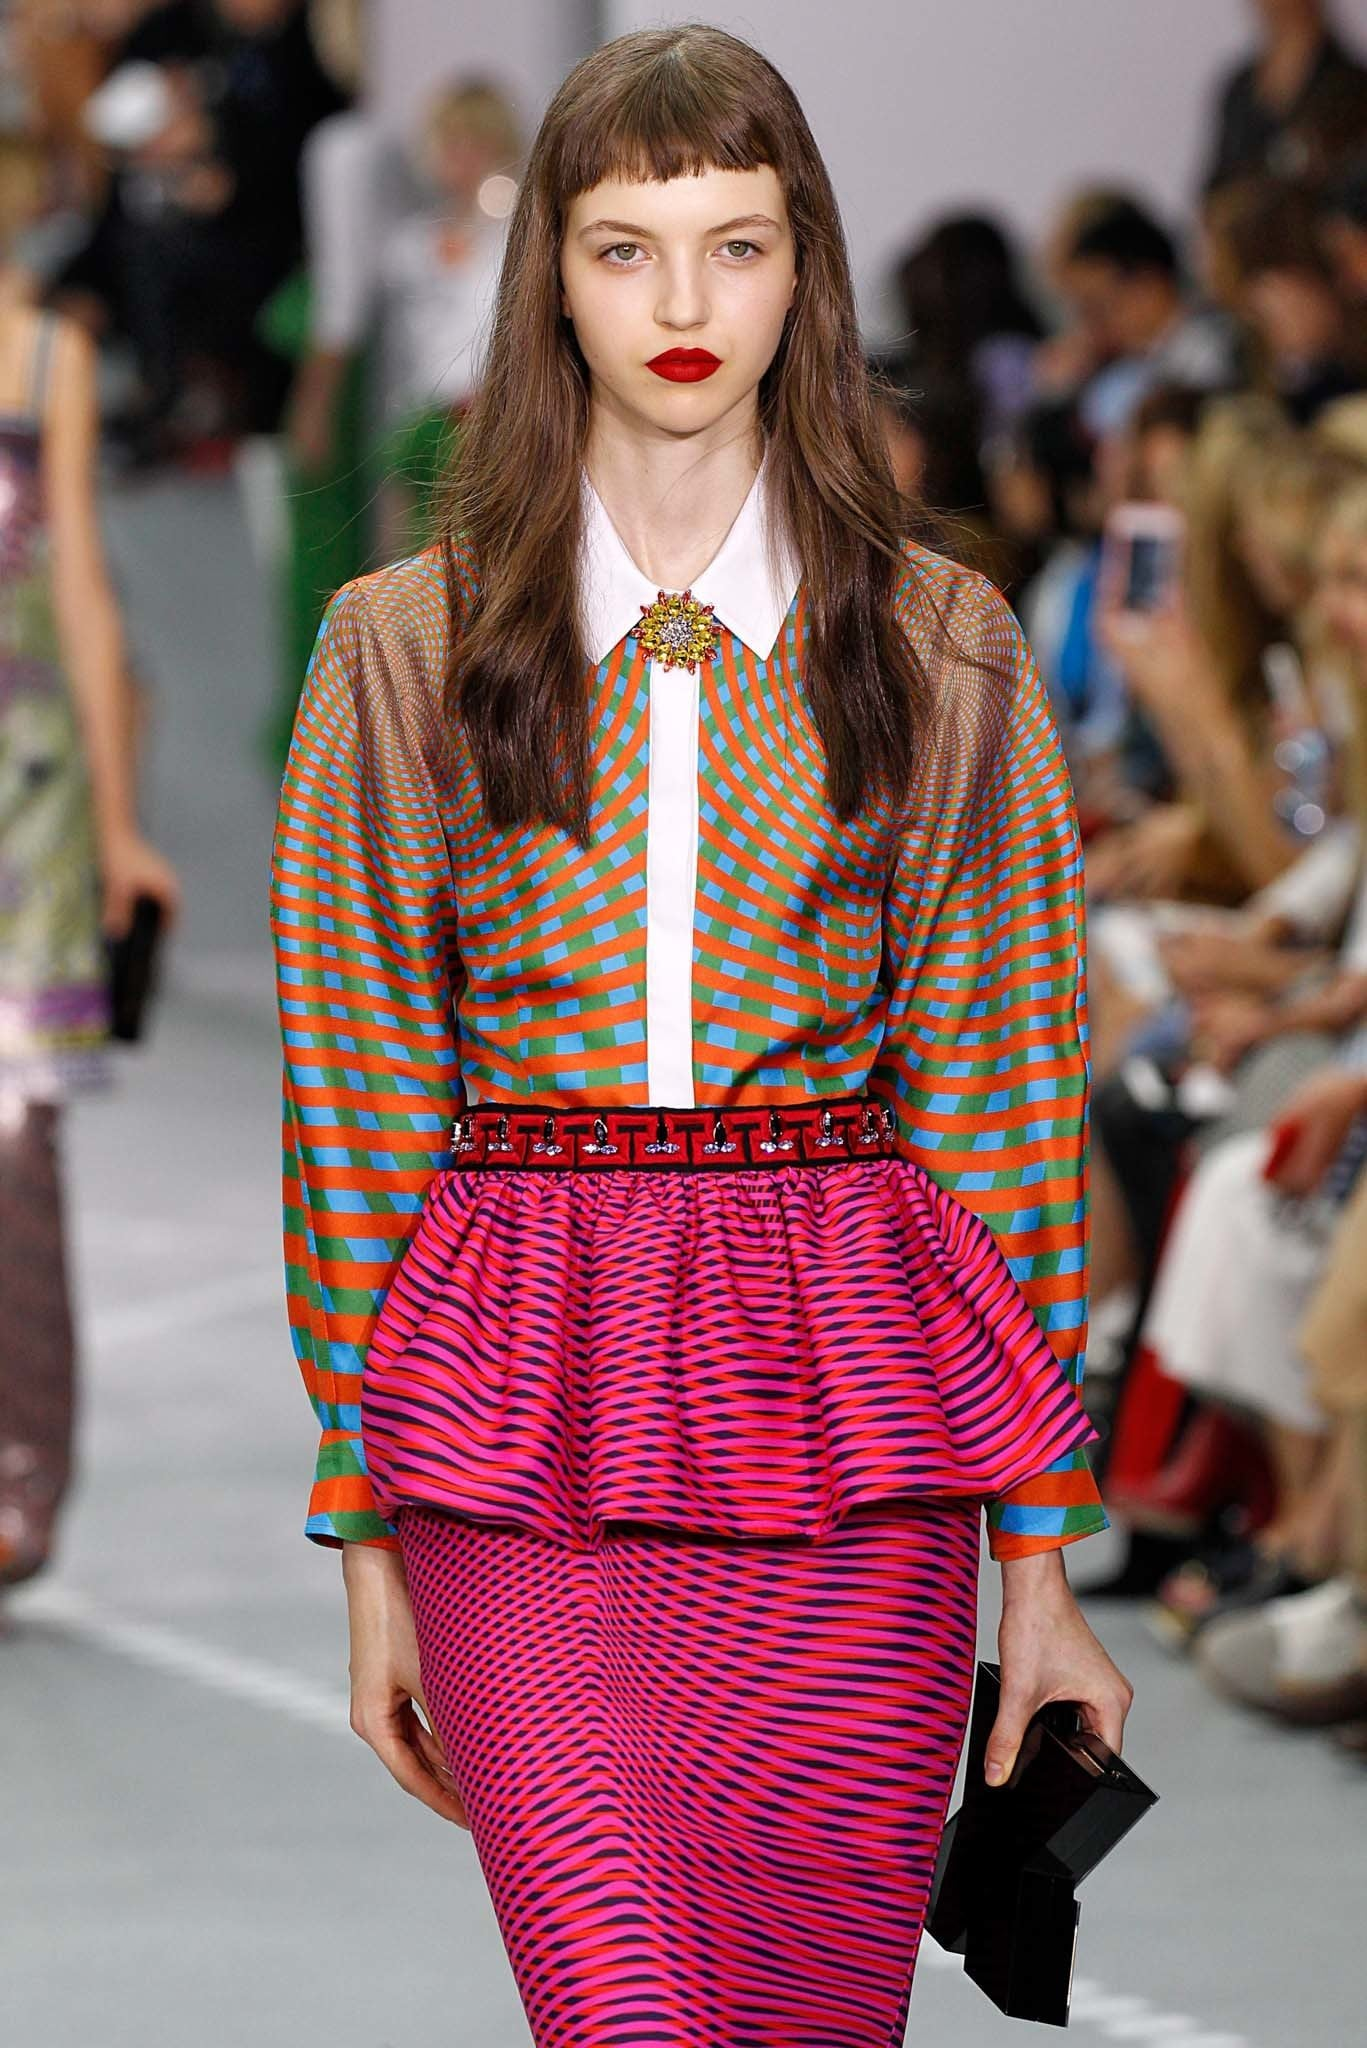 Short bangs: Model with long wavy brown hair and short micro fringe wearing a pattern shirt and skirt.